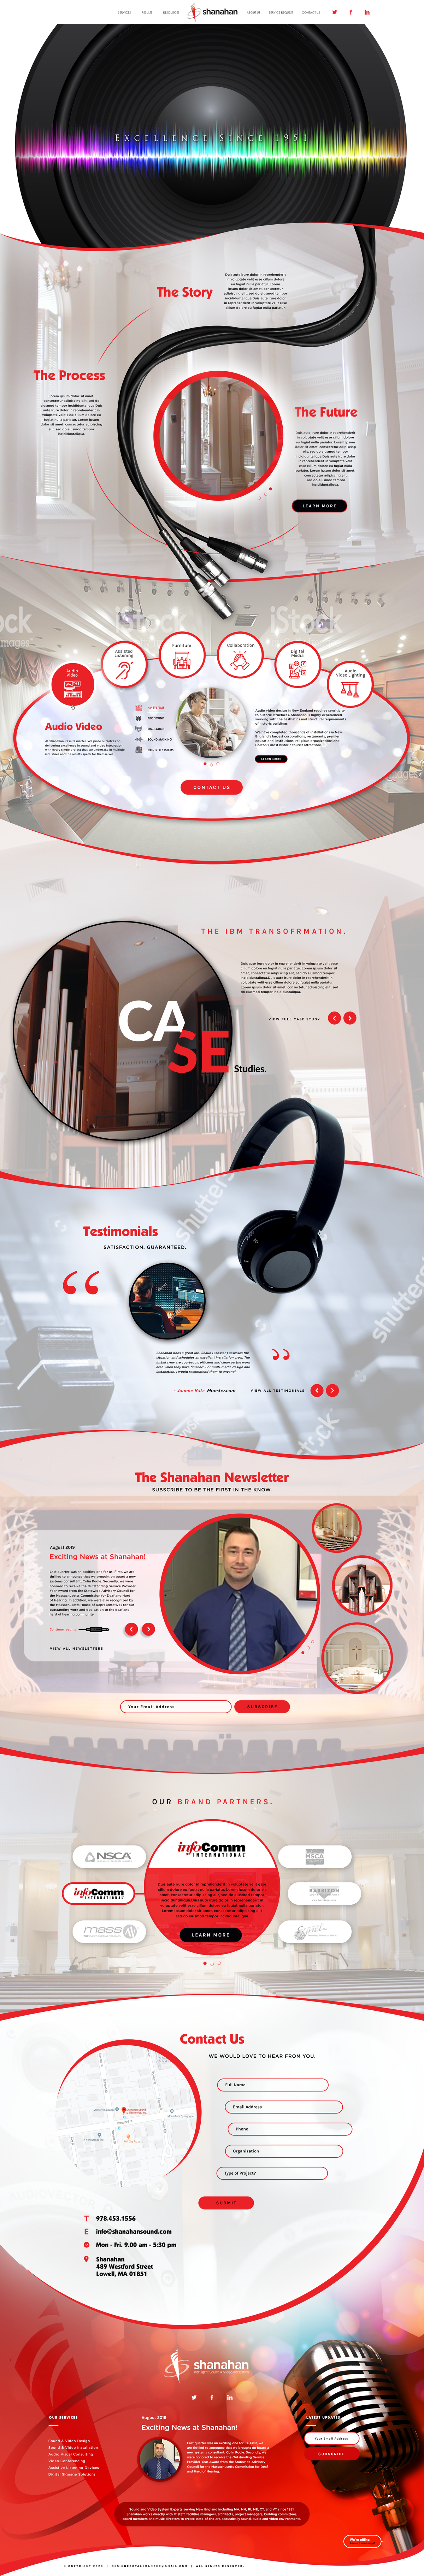 Shanahan Sound - Seeking beautiful new website design to break the mold for our industry.